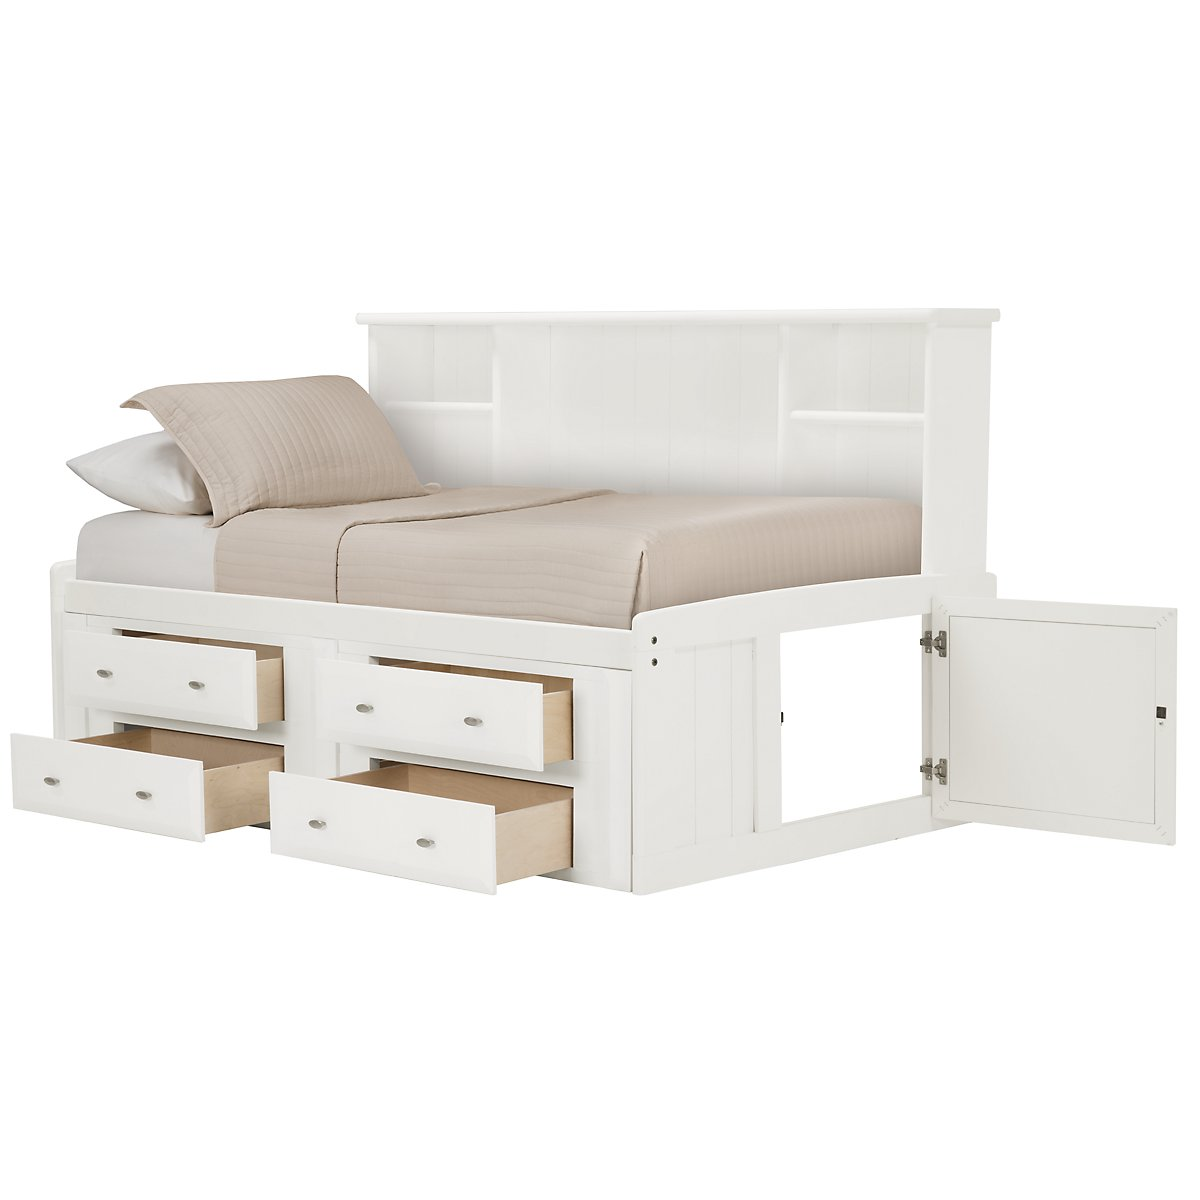 City furniture laguna white storage bookcase daybed Daybeds with storage